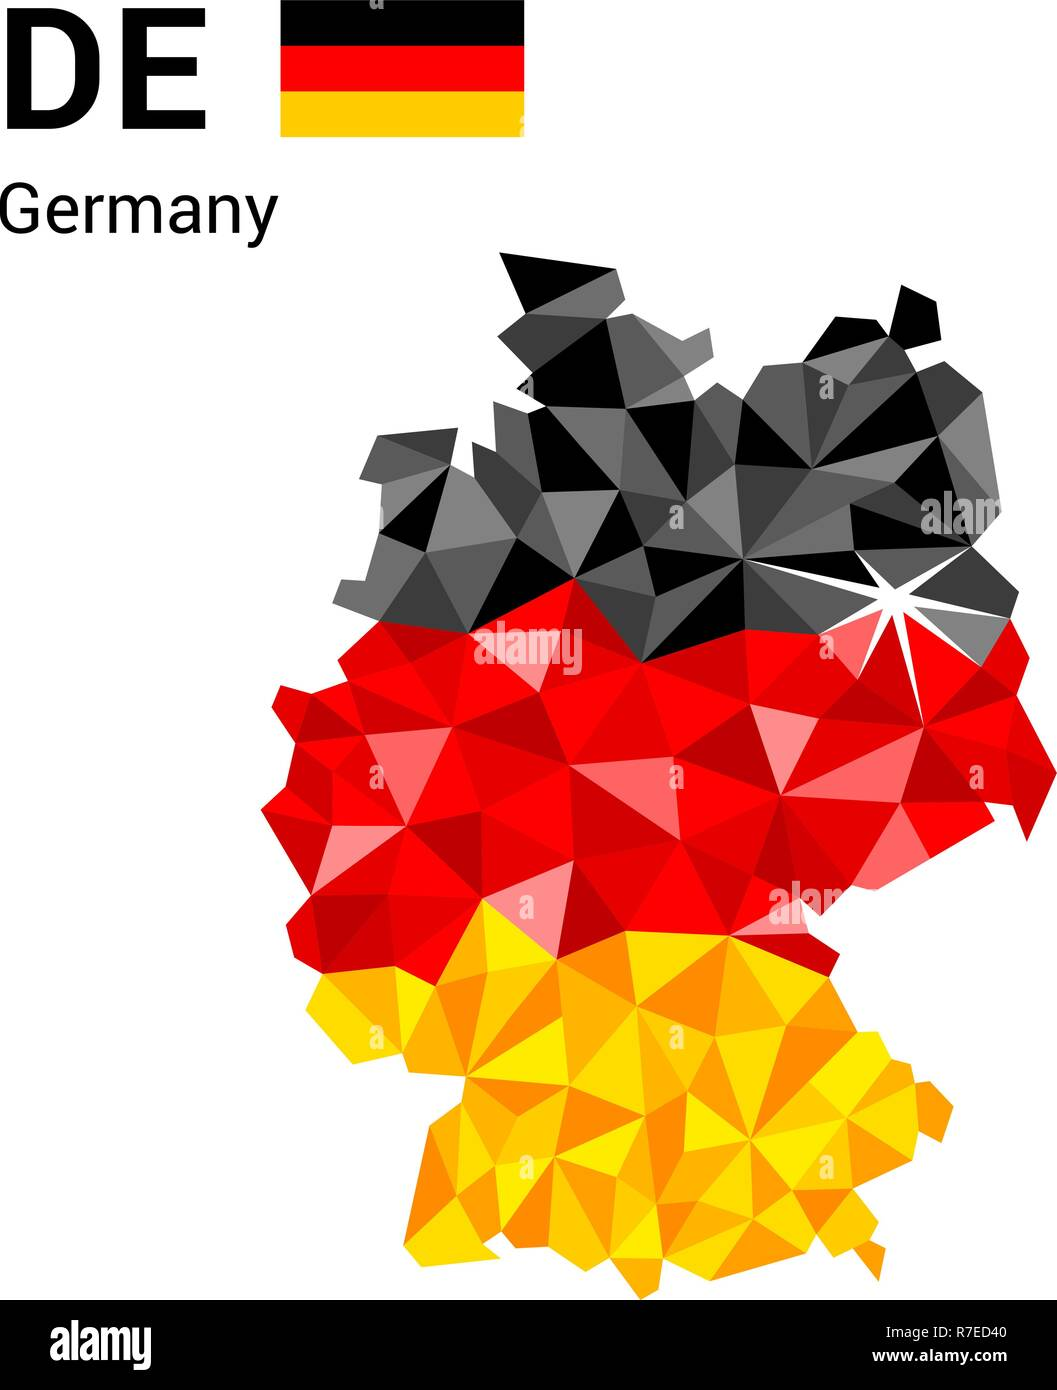 Germany flag map in polygonal geometric style. - Stock Vector